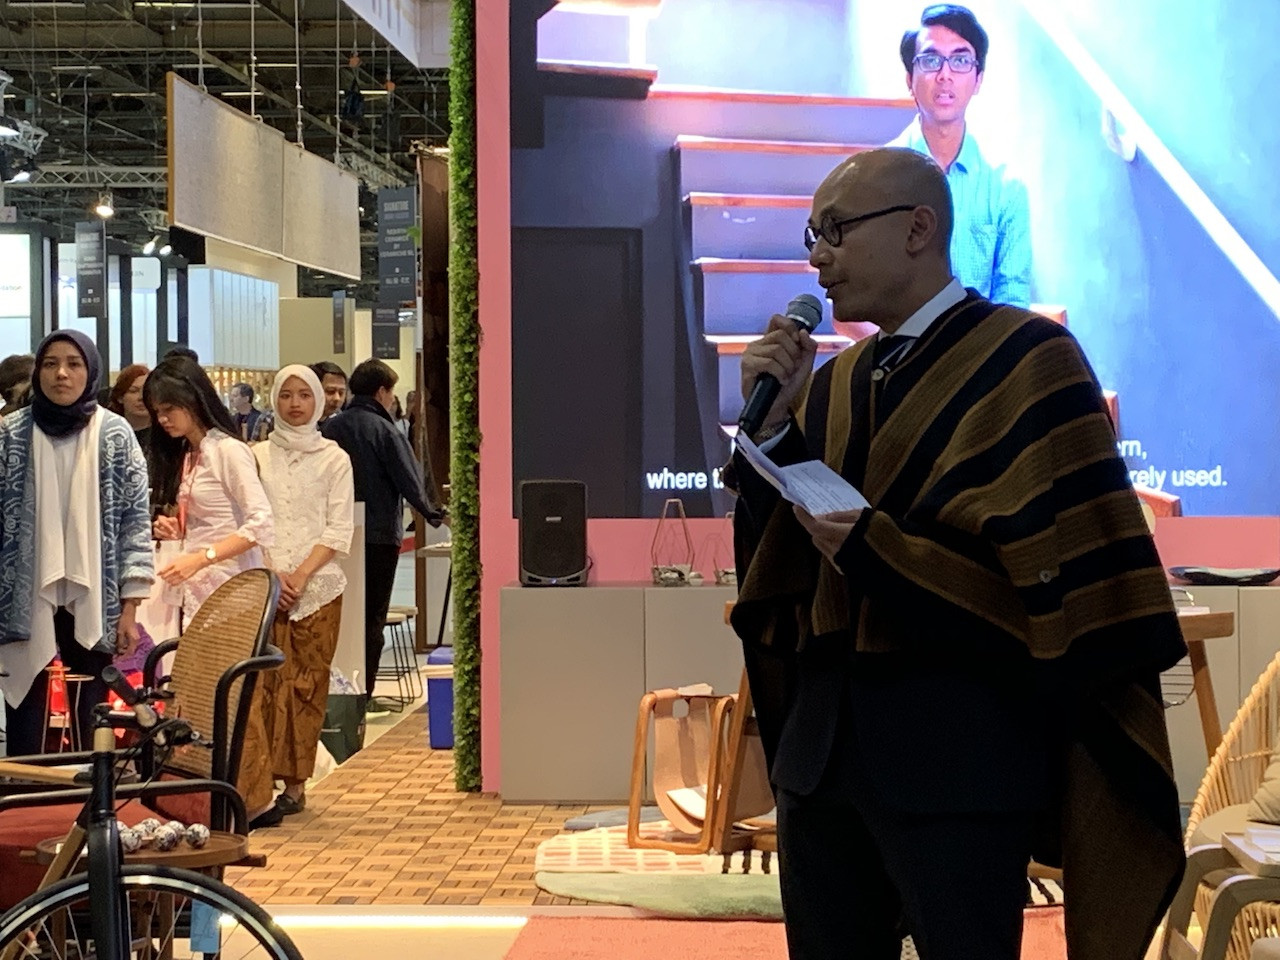 Presenting Indonesian craftsmanship: Indonesian Ambassador to France Arrmanatha Nasir opens the Indonesian Pavilion at Maison&Objet 2019 on Friday.